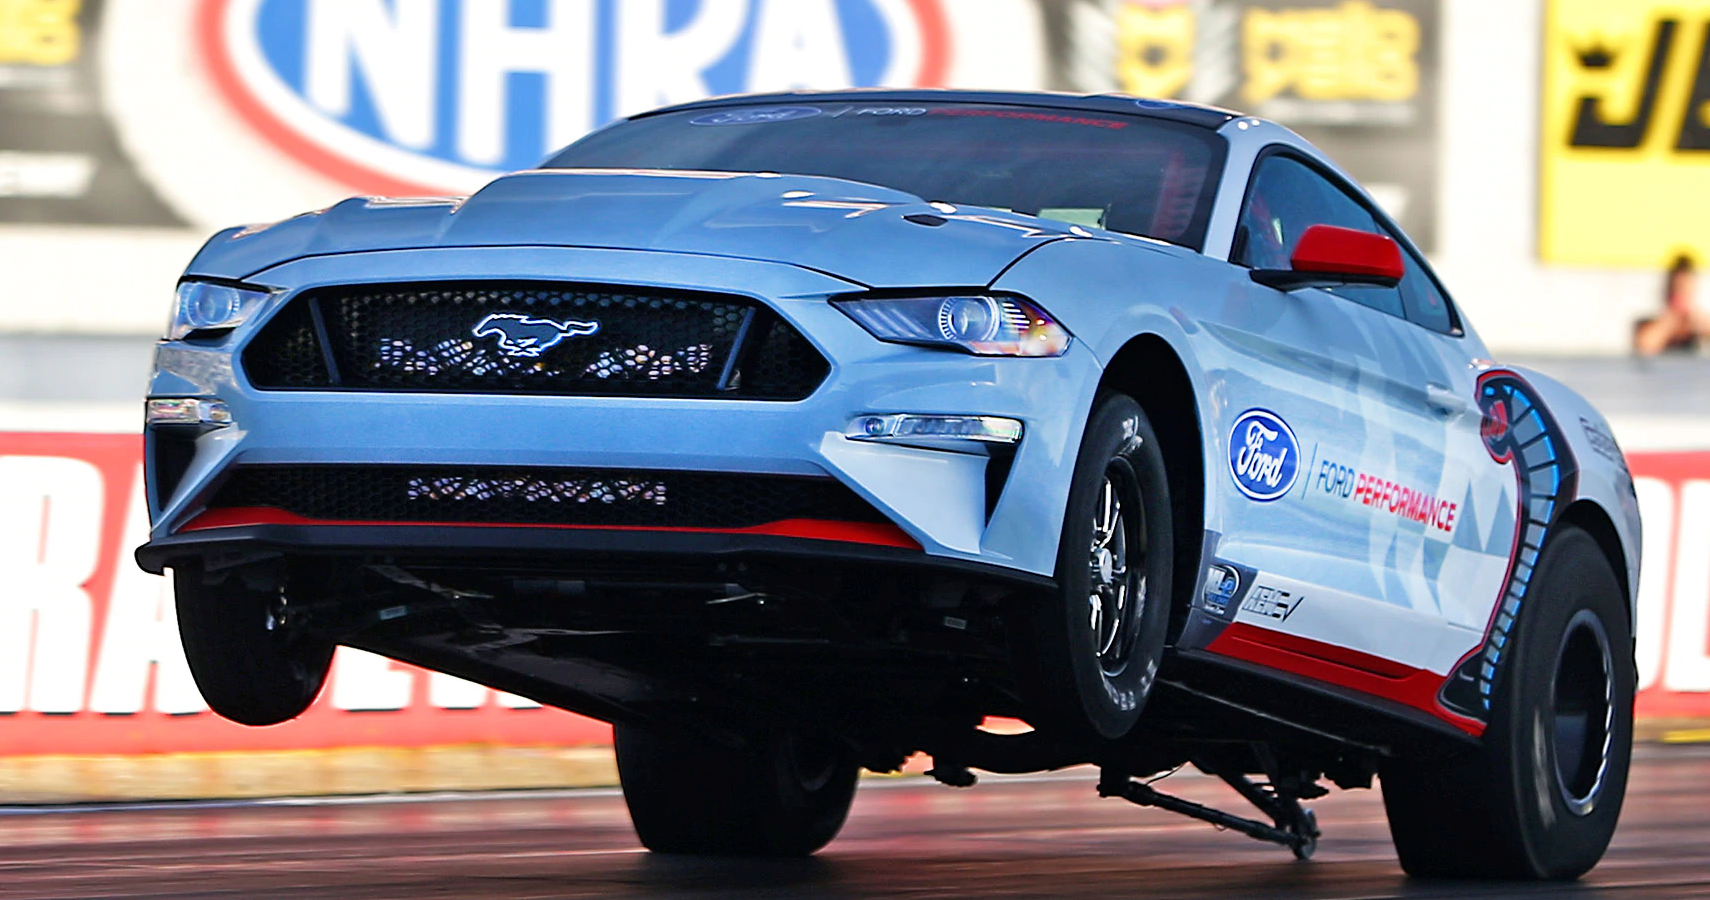 Mustang Cobra Jet: Watch Ford Share The Electric Dragster's Epic Origin Story